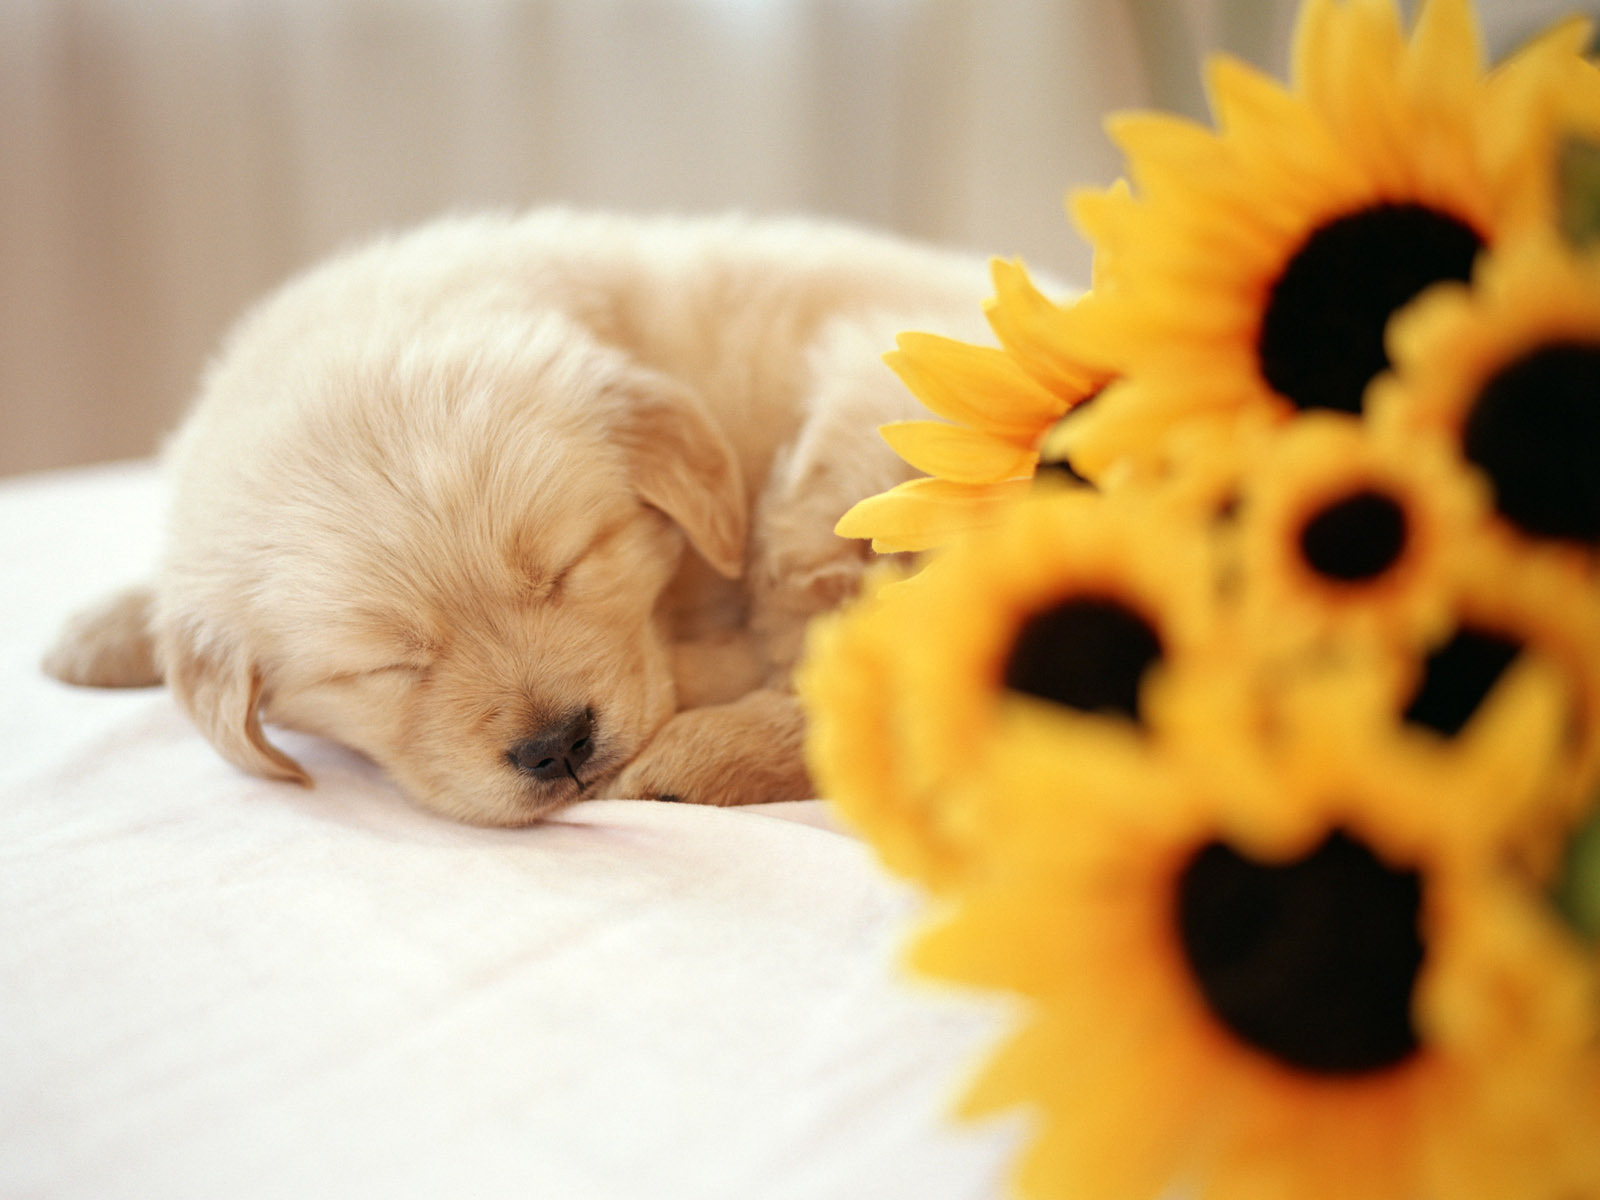 Ideas About Cute Puppy Puppies Backgrounds On Download Wallpapers